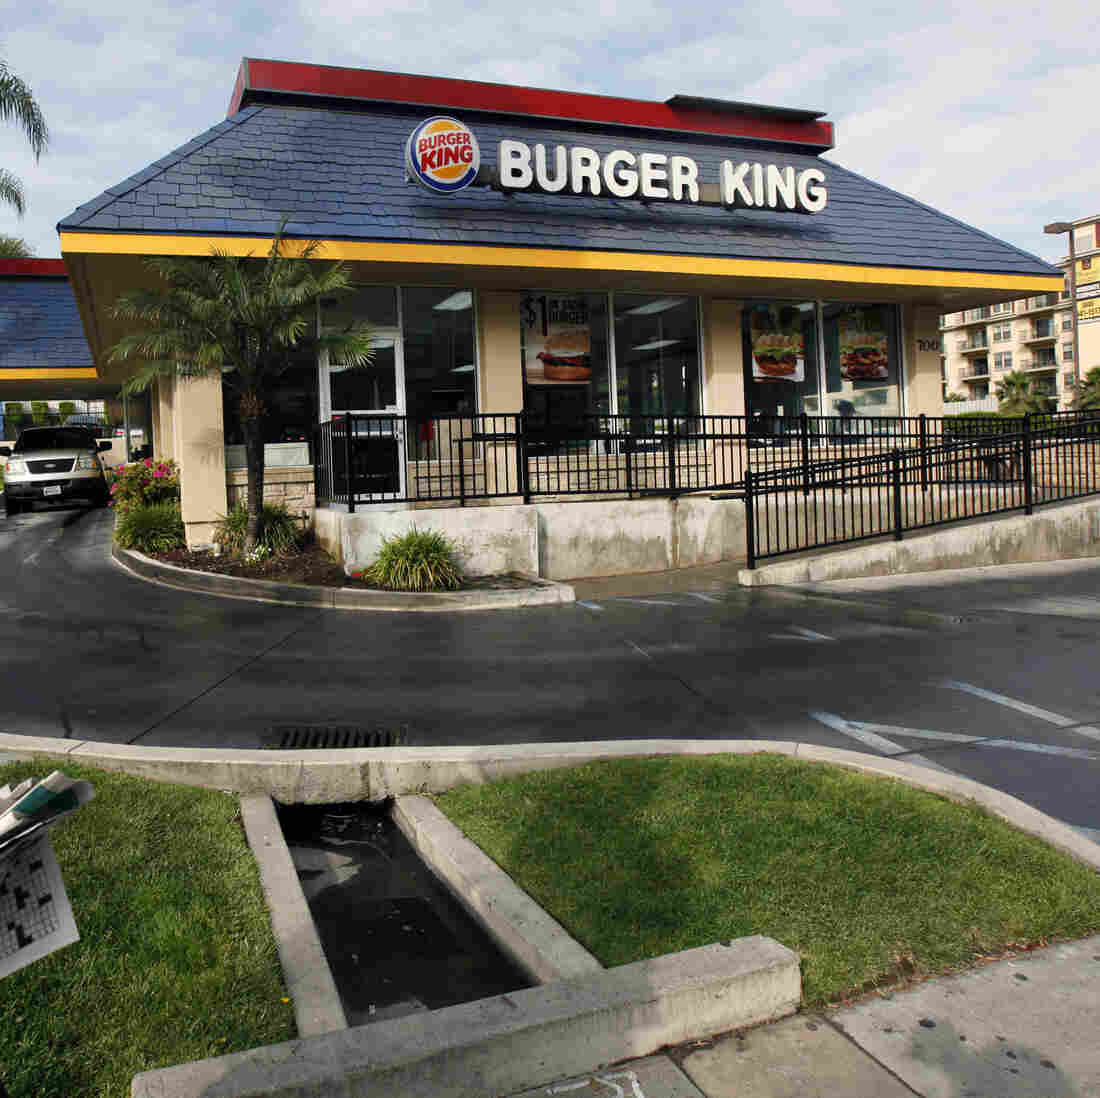 A pedestrian walks past a Burger King restaurant near downtown Los Angeles.